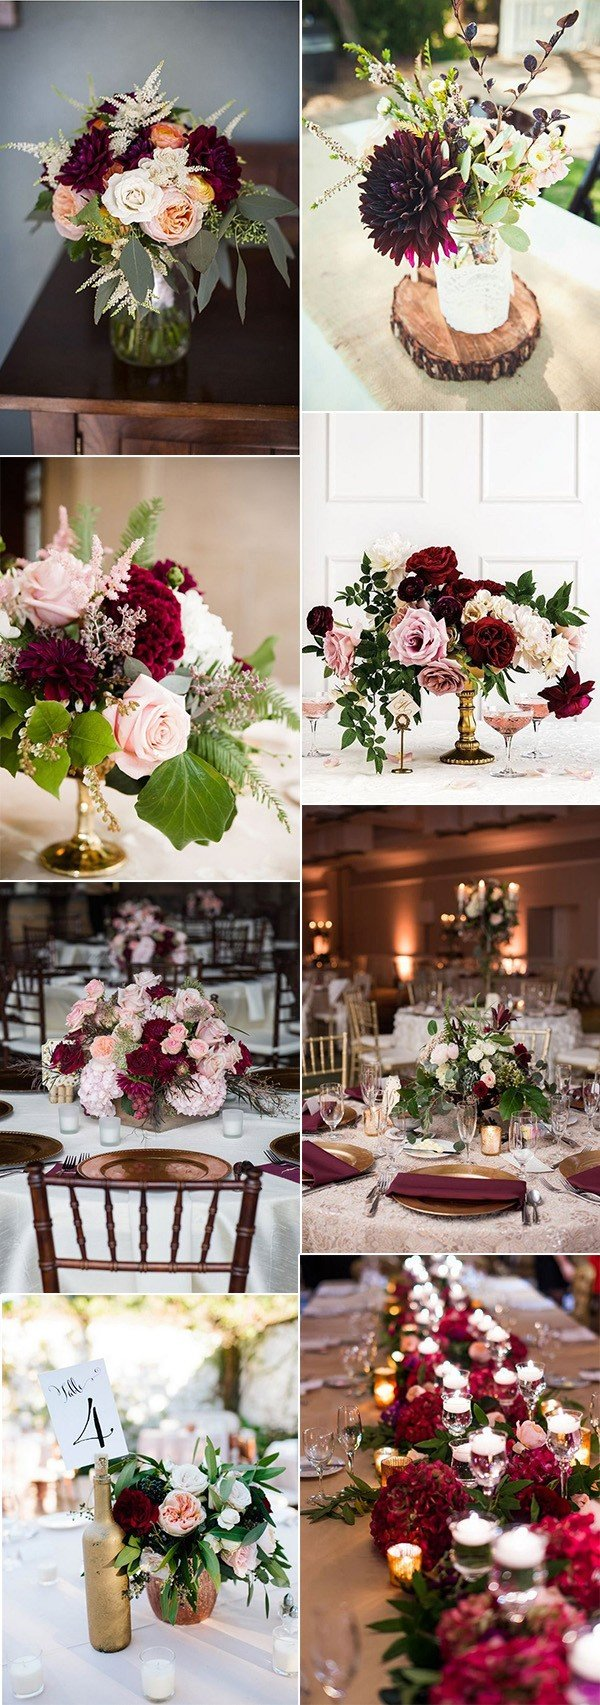 burgundy and blush fall wedding centerpieces for 2018